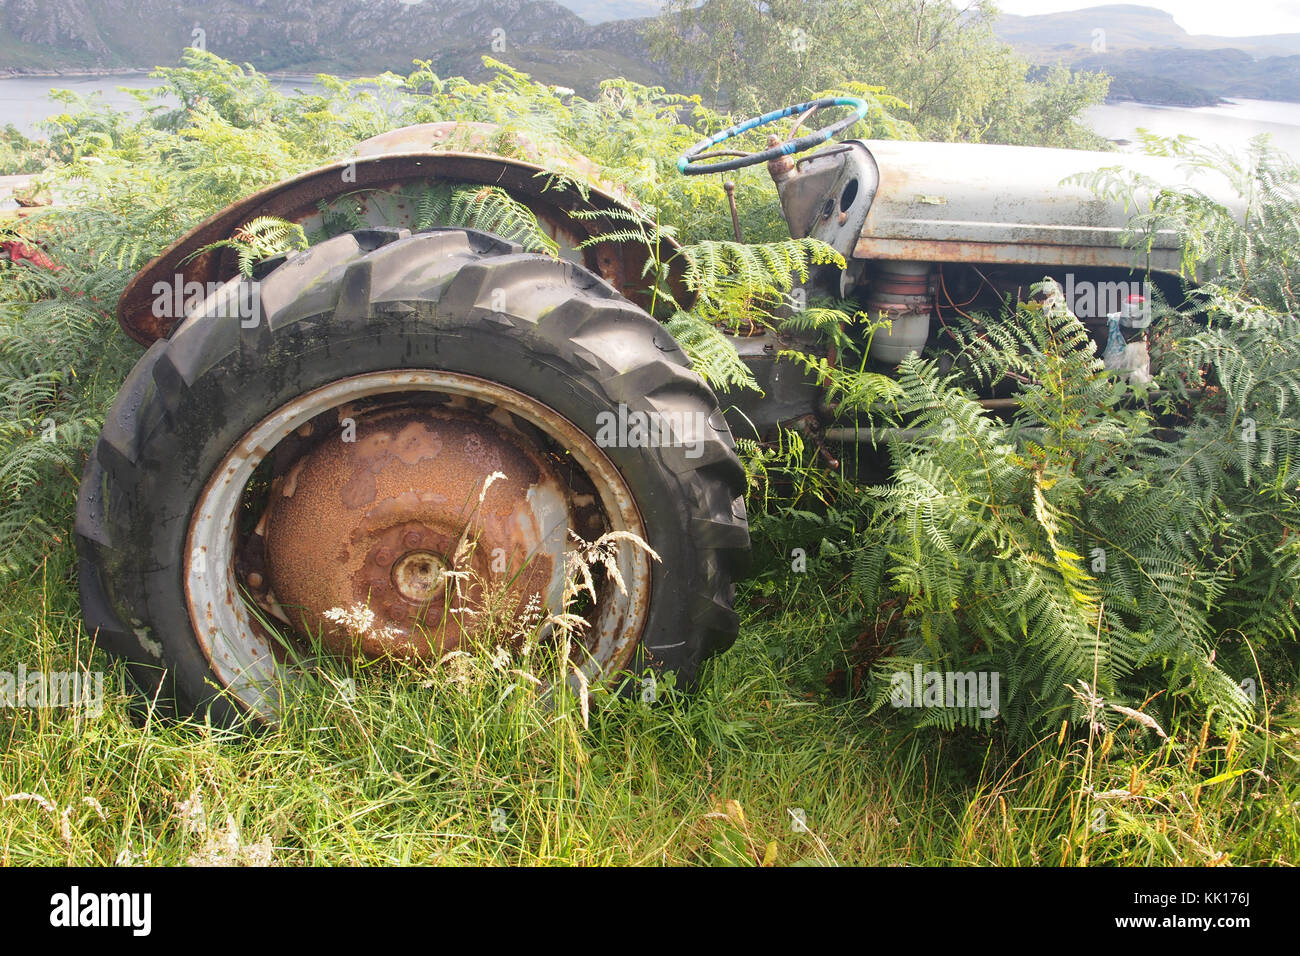 An old tractor left by the side of the road engulfed in bracken - Stock Image